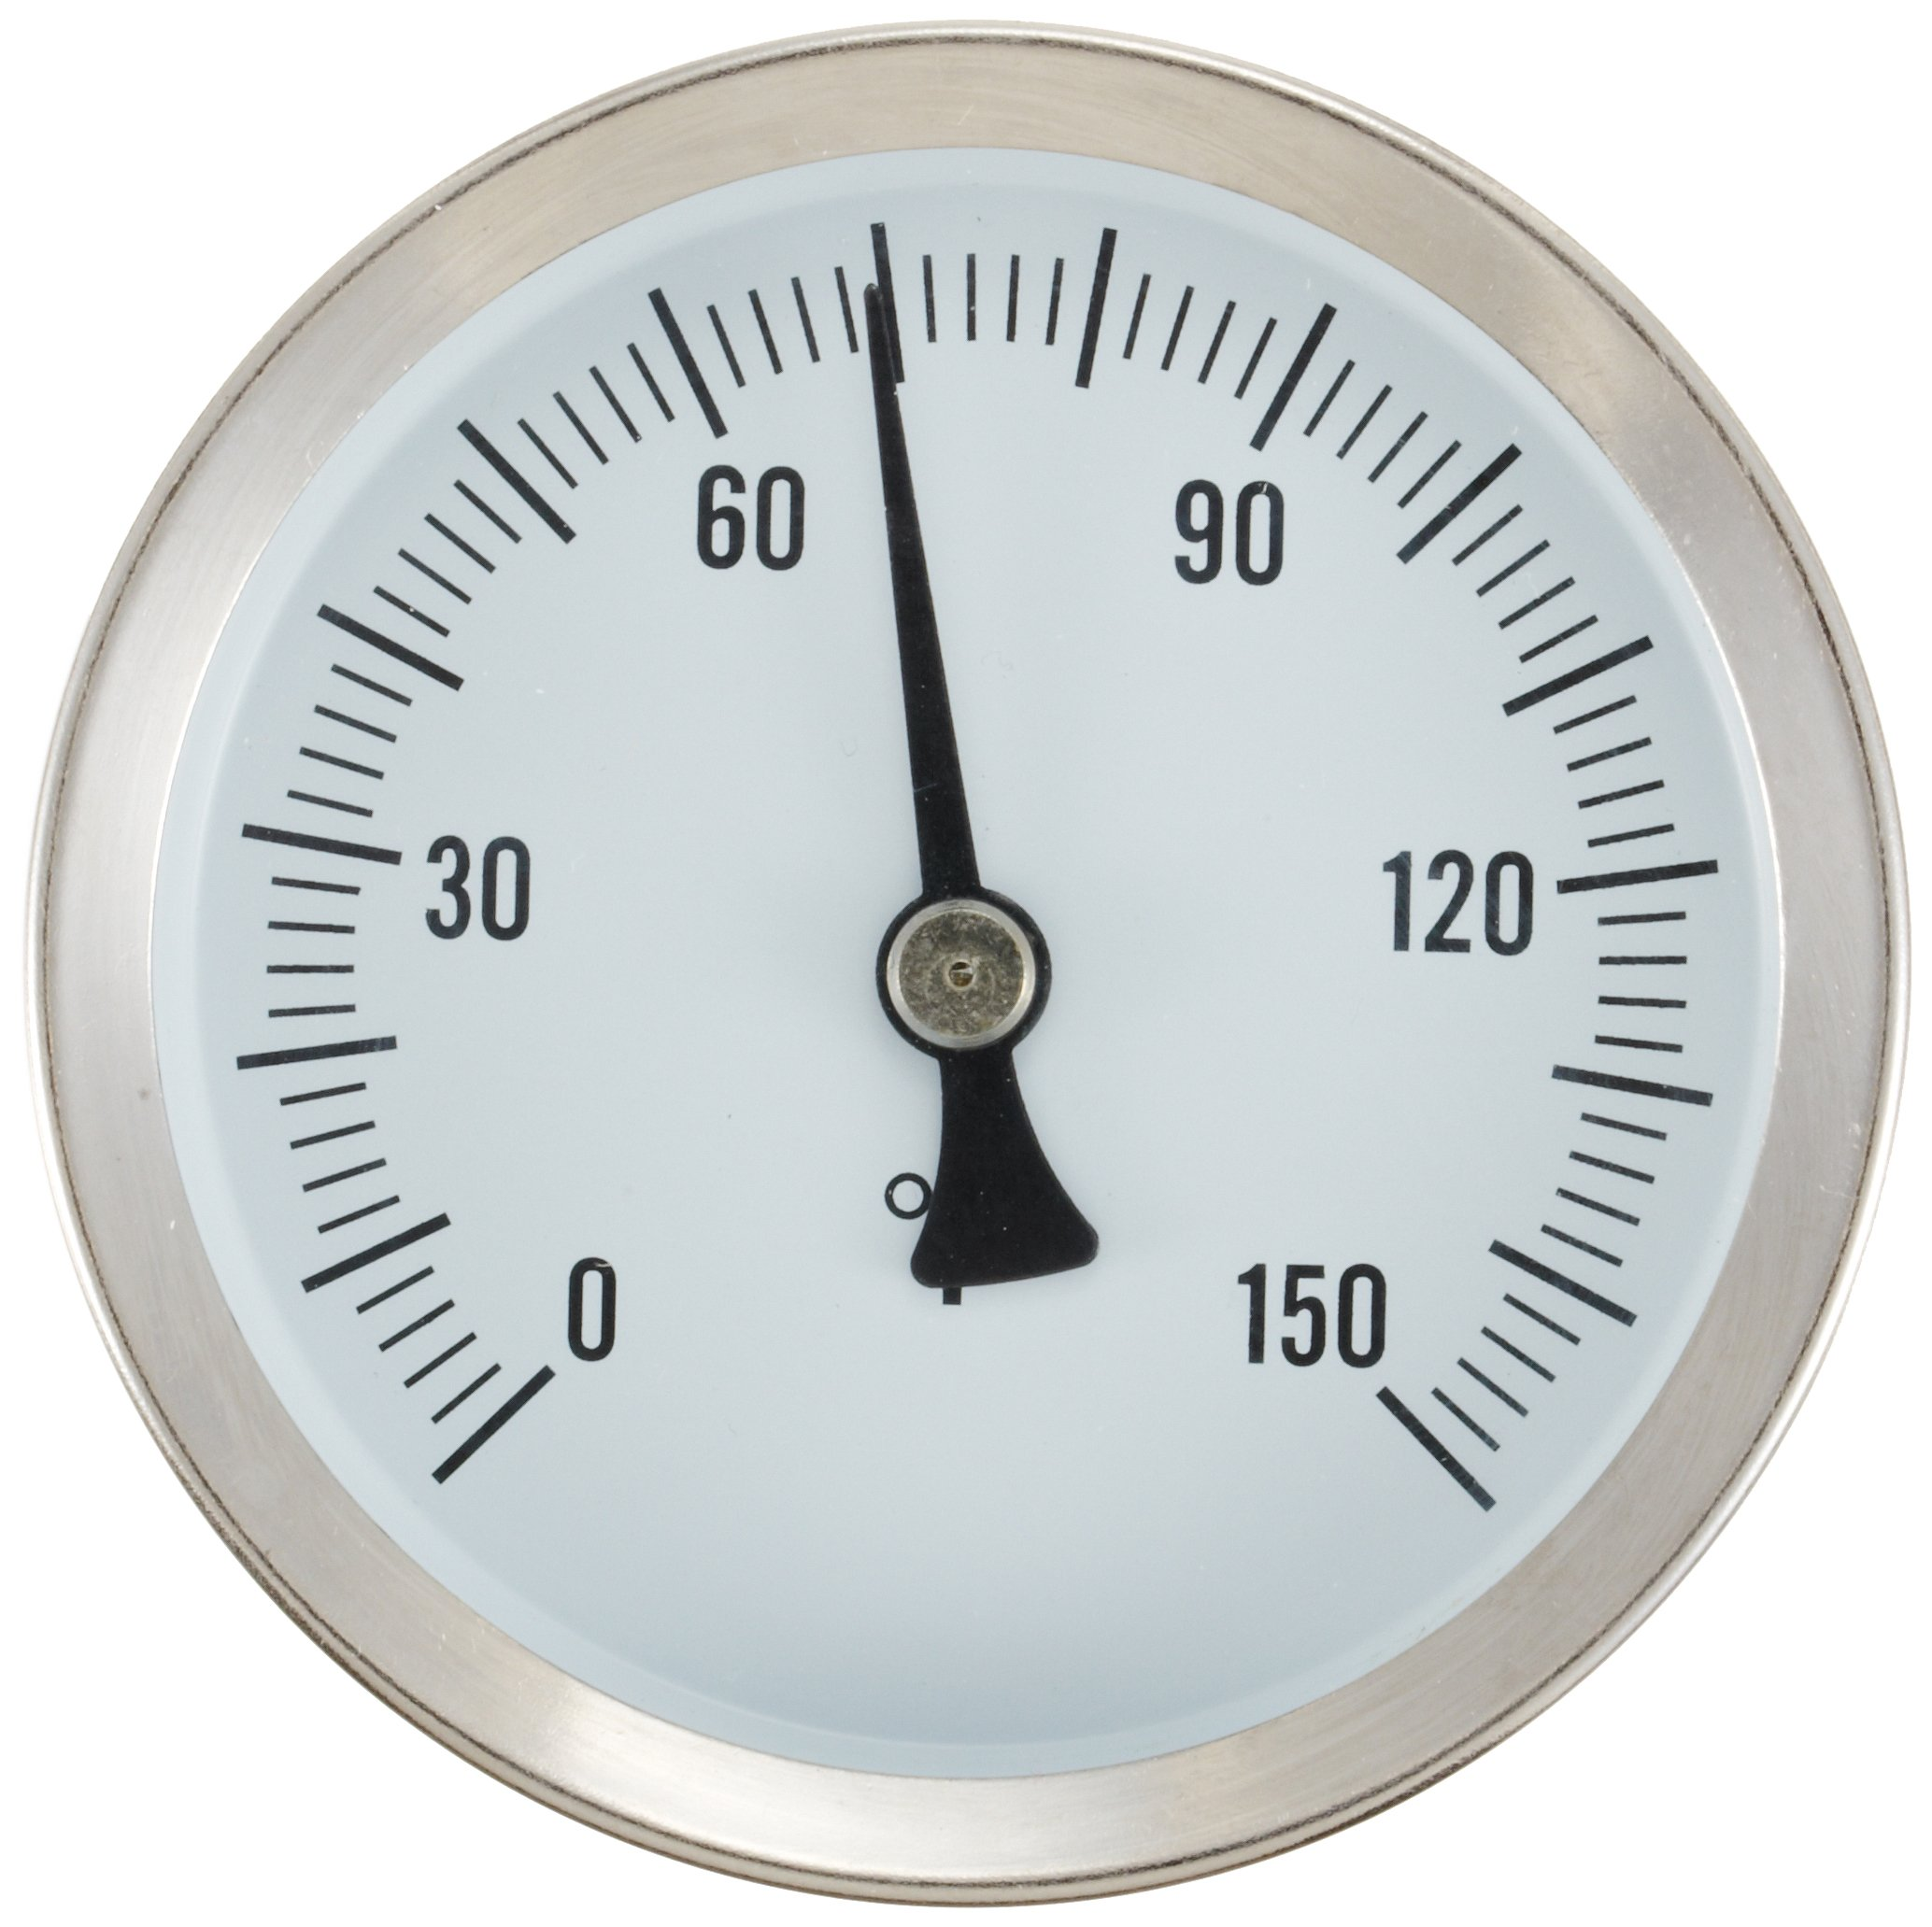 PIC Gauge B2SS-E 2.5'' Dial Size, 0/150°F, Surface Mount, Straight, Lower Mount Connection, Stainless Steel Case, 316 Stainless Steel Stem Bimetal Thermometer